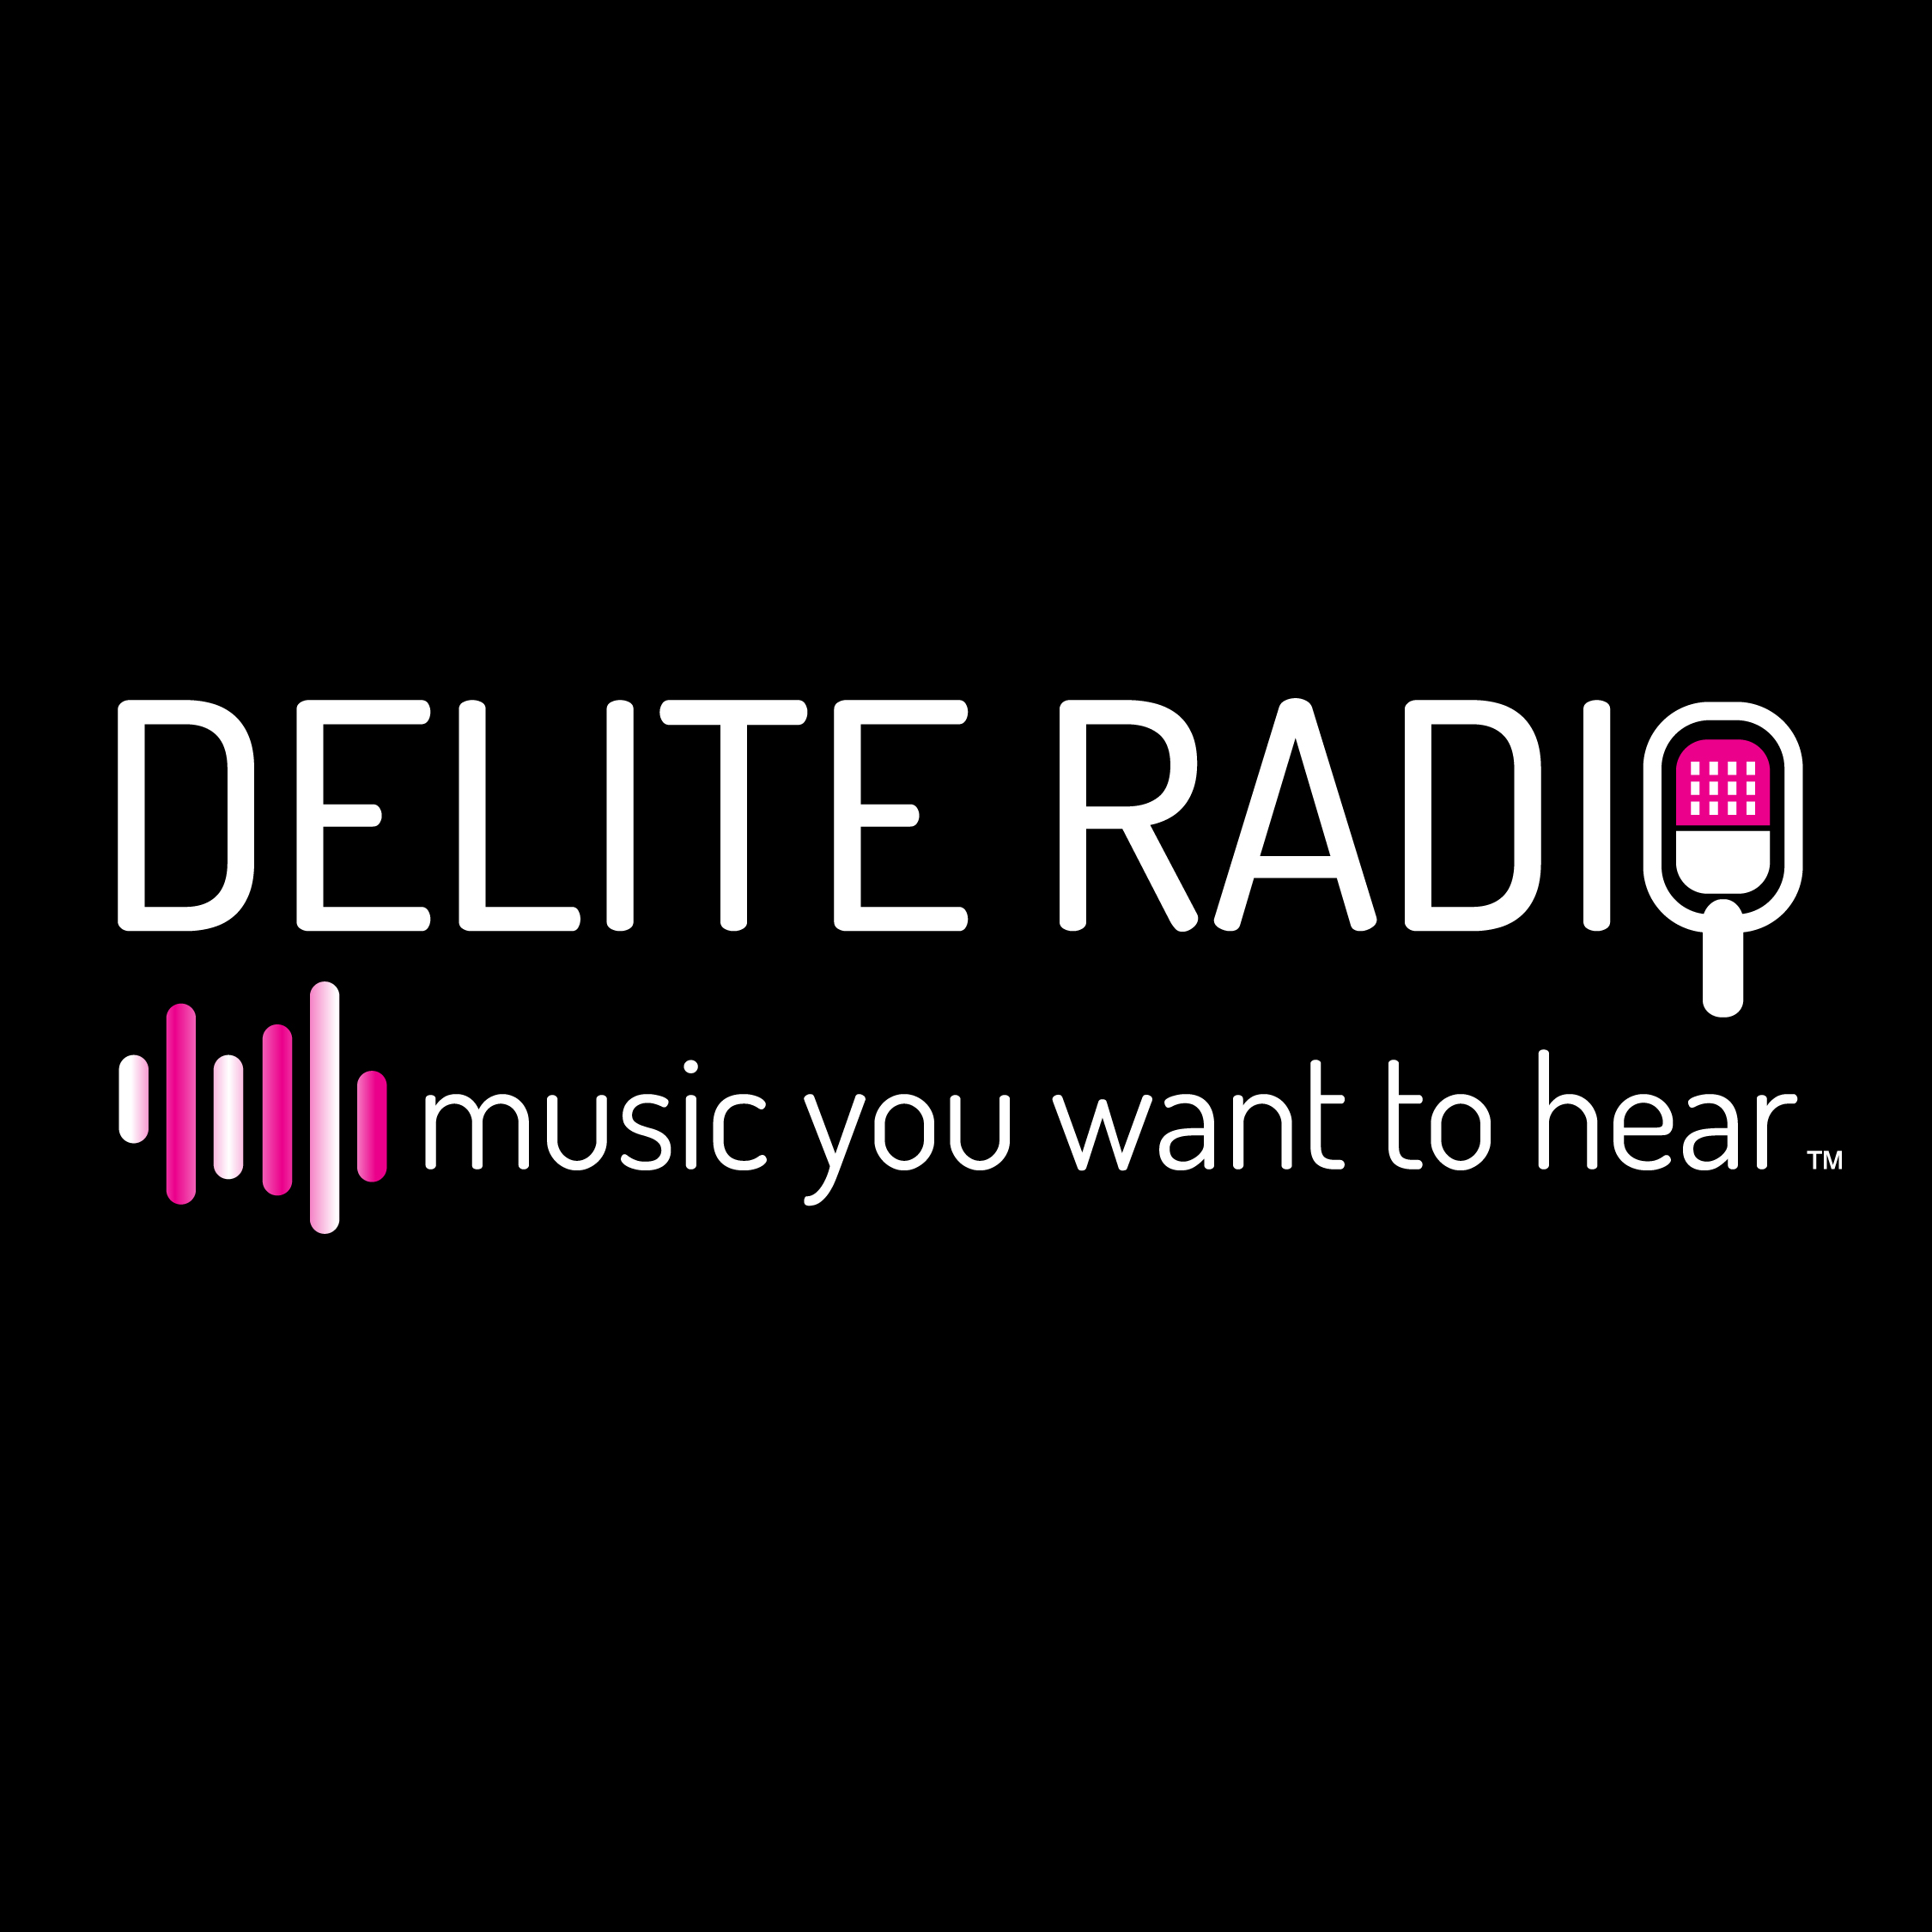 DeliteRadio-music you want to hear BLACK_Instagram_1080x1080px.jpg (231 KB)